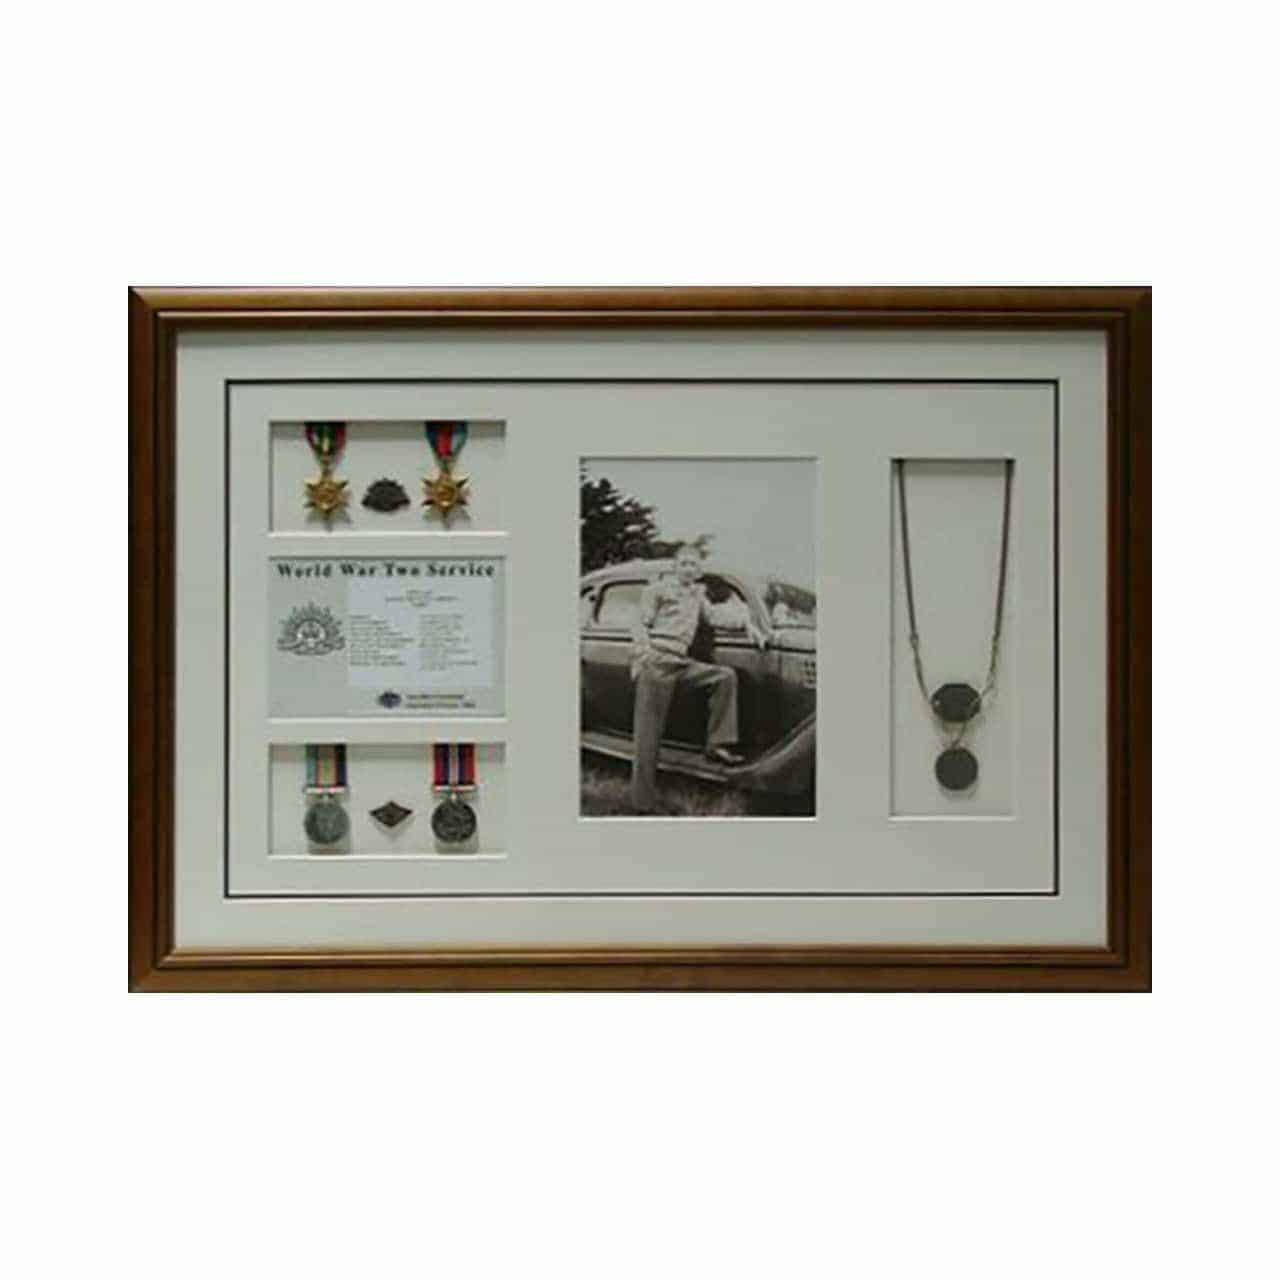 Kew Picture Framing